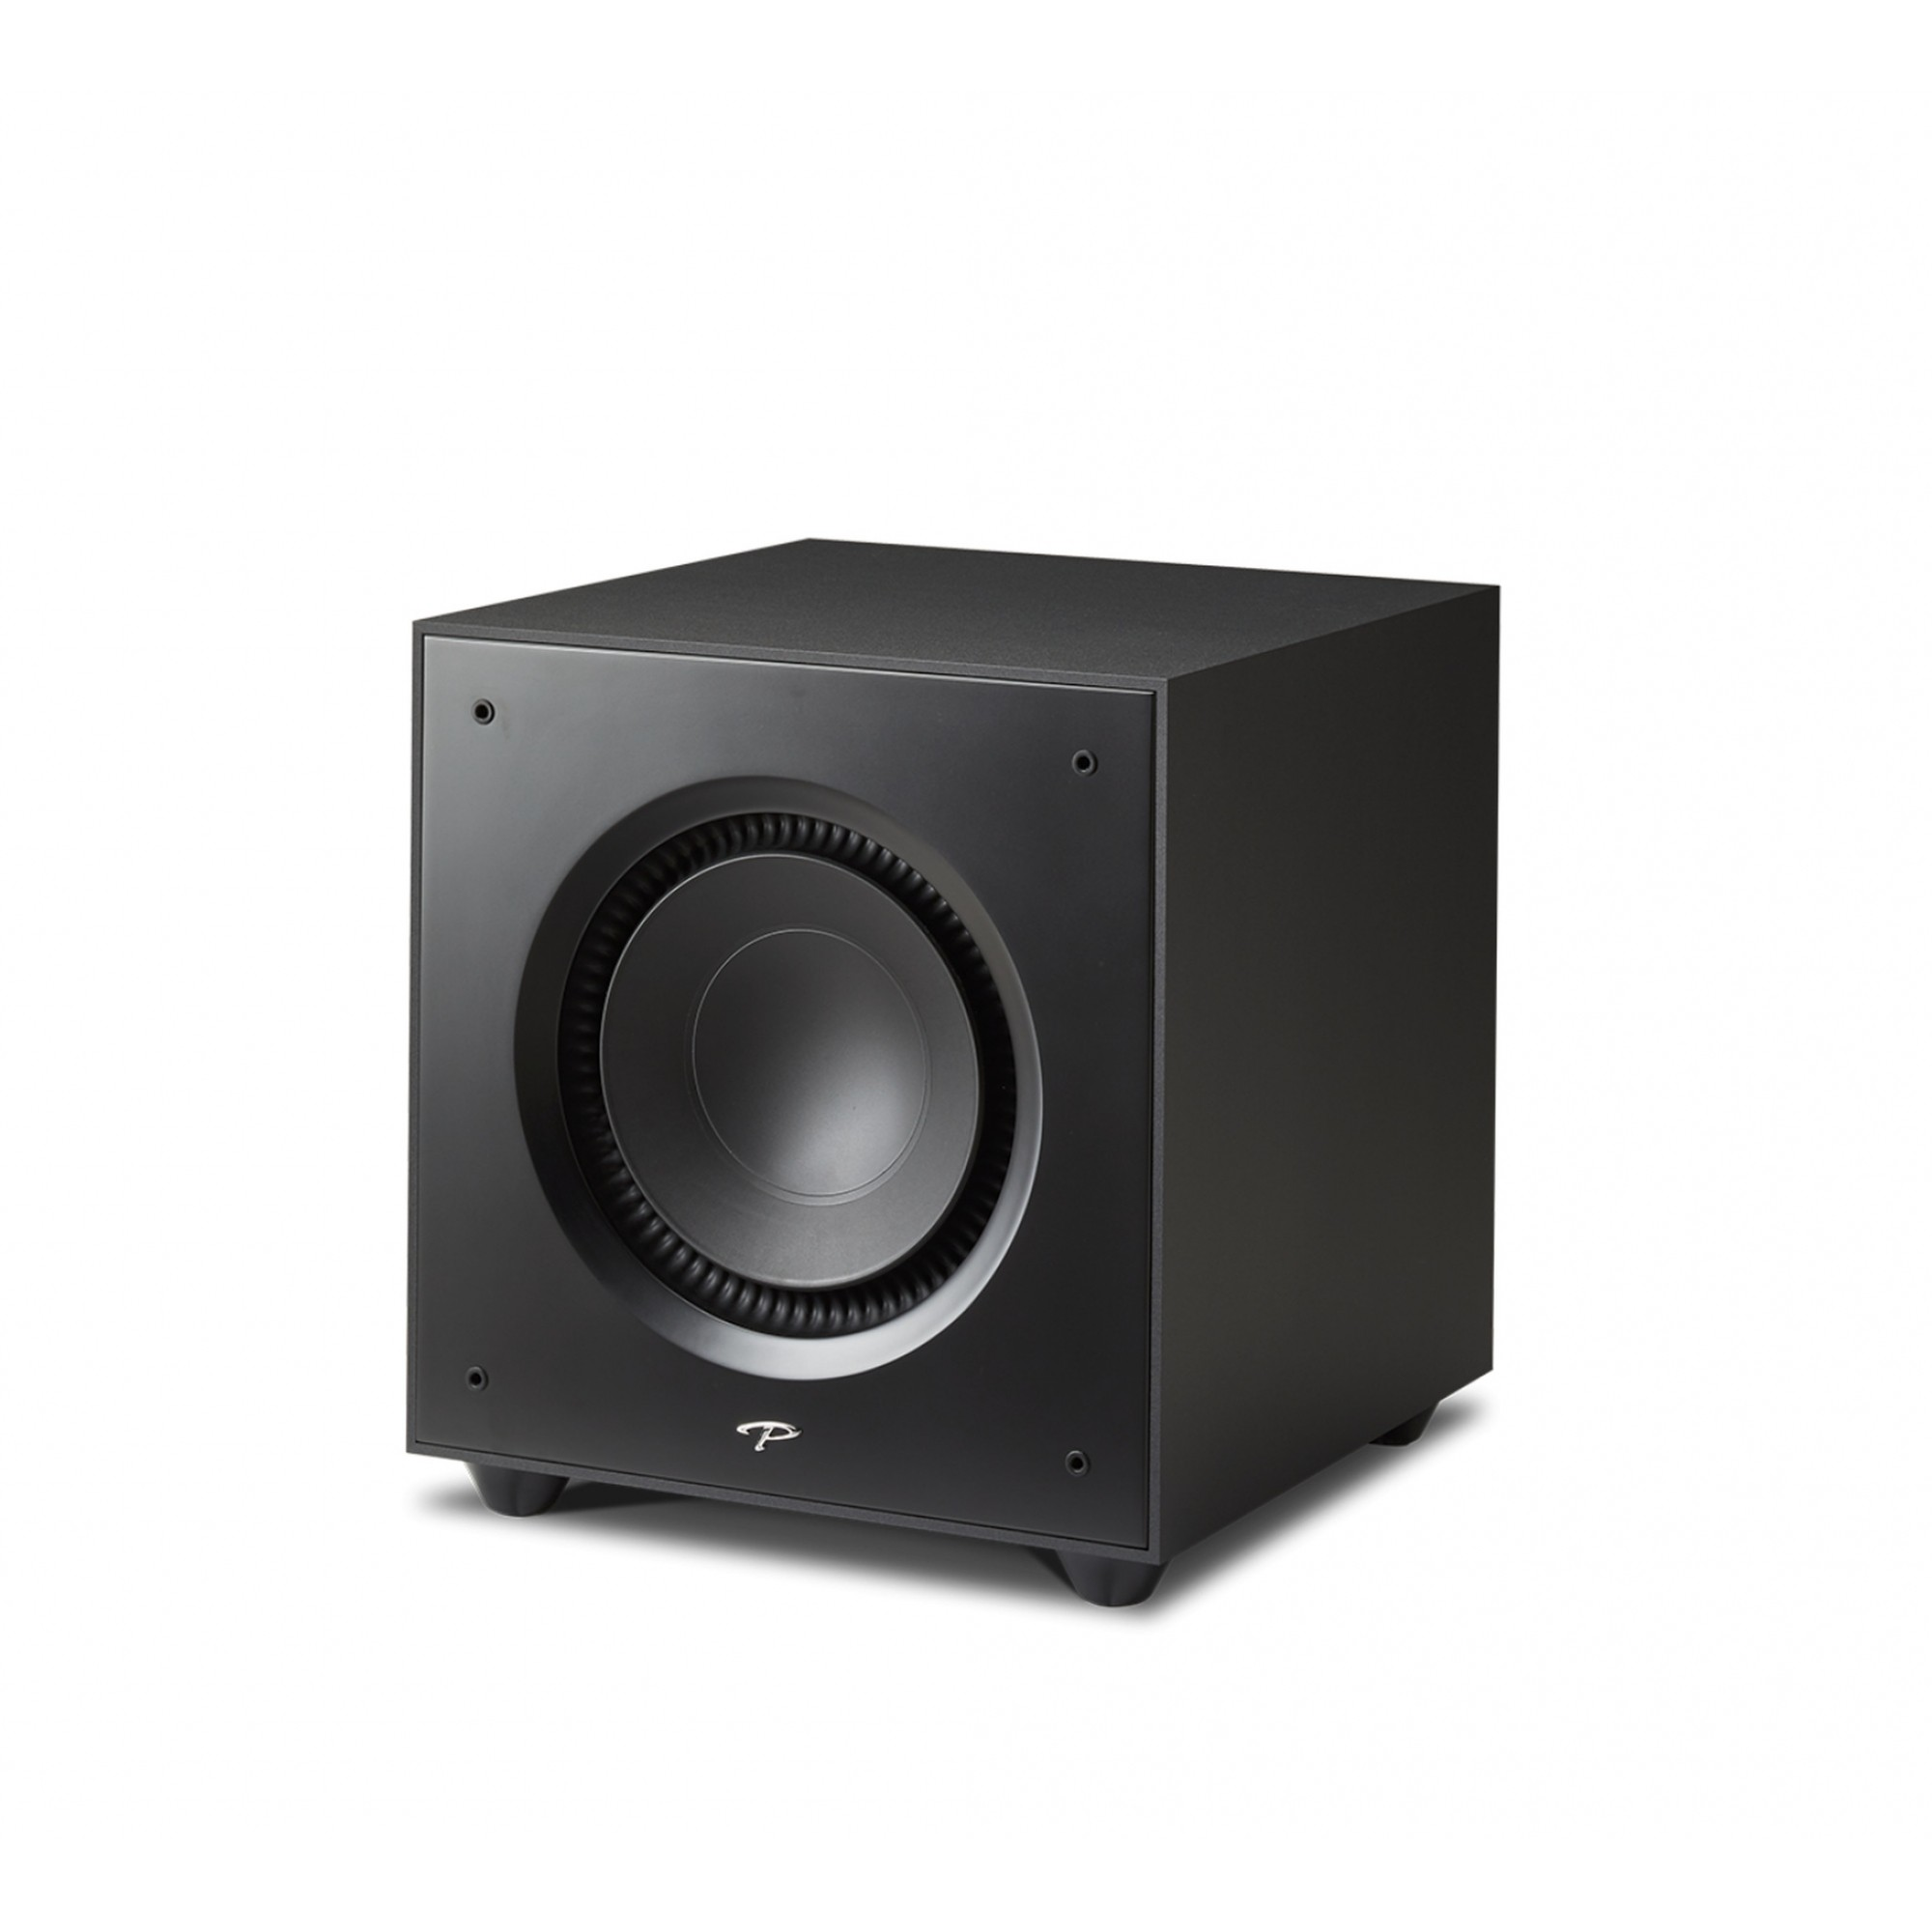 SUBWOOFER ATIVO HOME THEATER PARADIGM DEFIANCE X12 - 1300W PICO ( MADE IN CANADA )